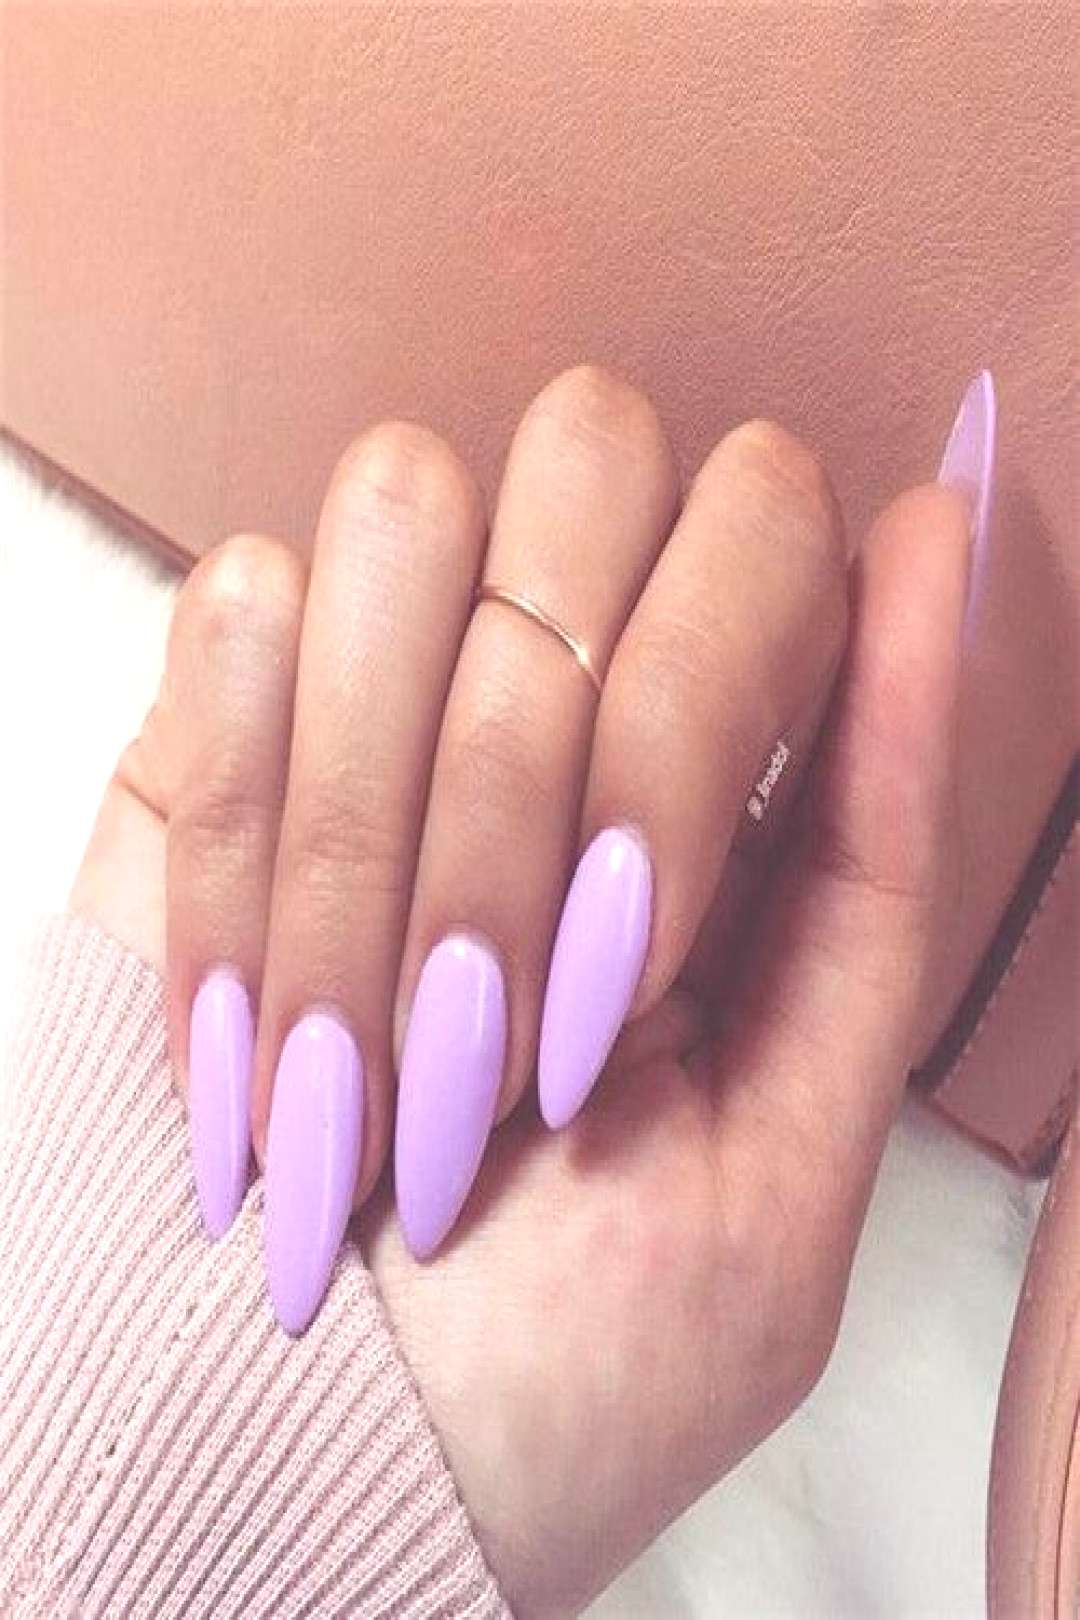 Unique Acrylic Almond Nails Designs For You In Summer Nail Art Connect#almondn